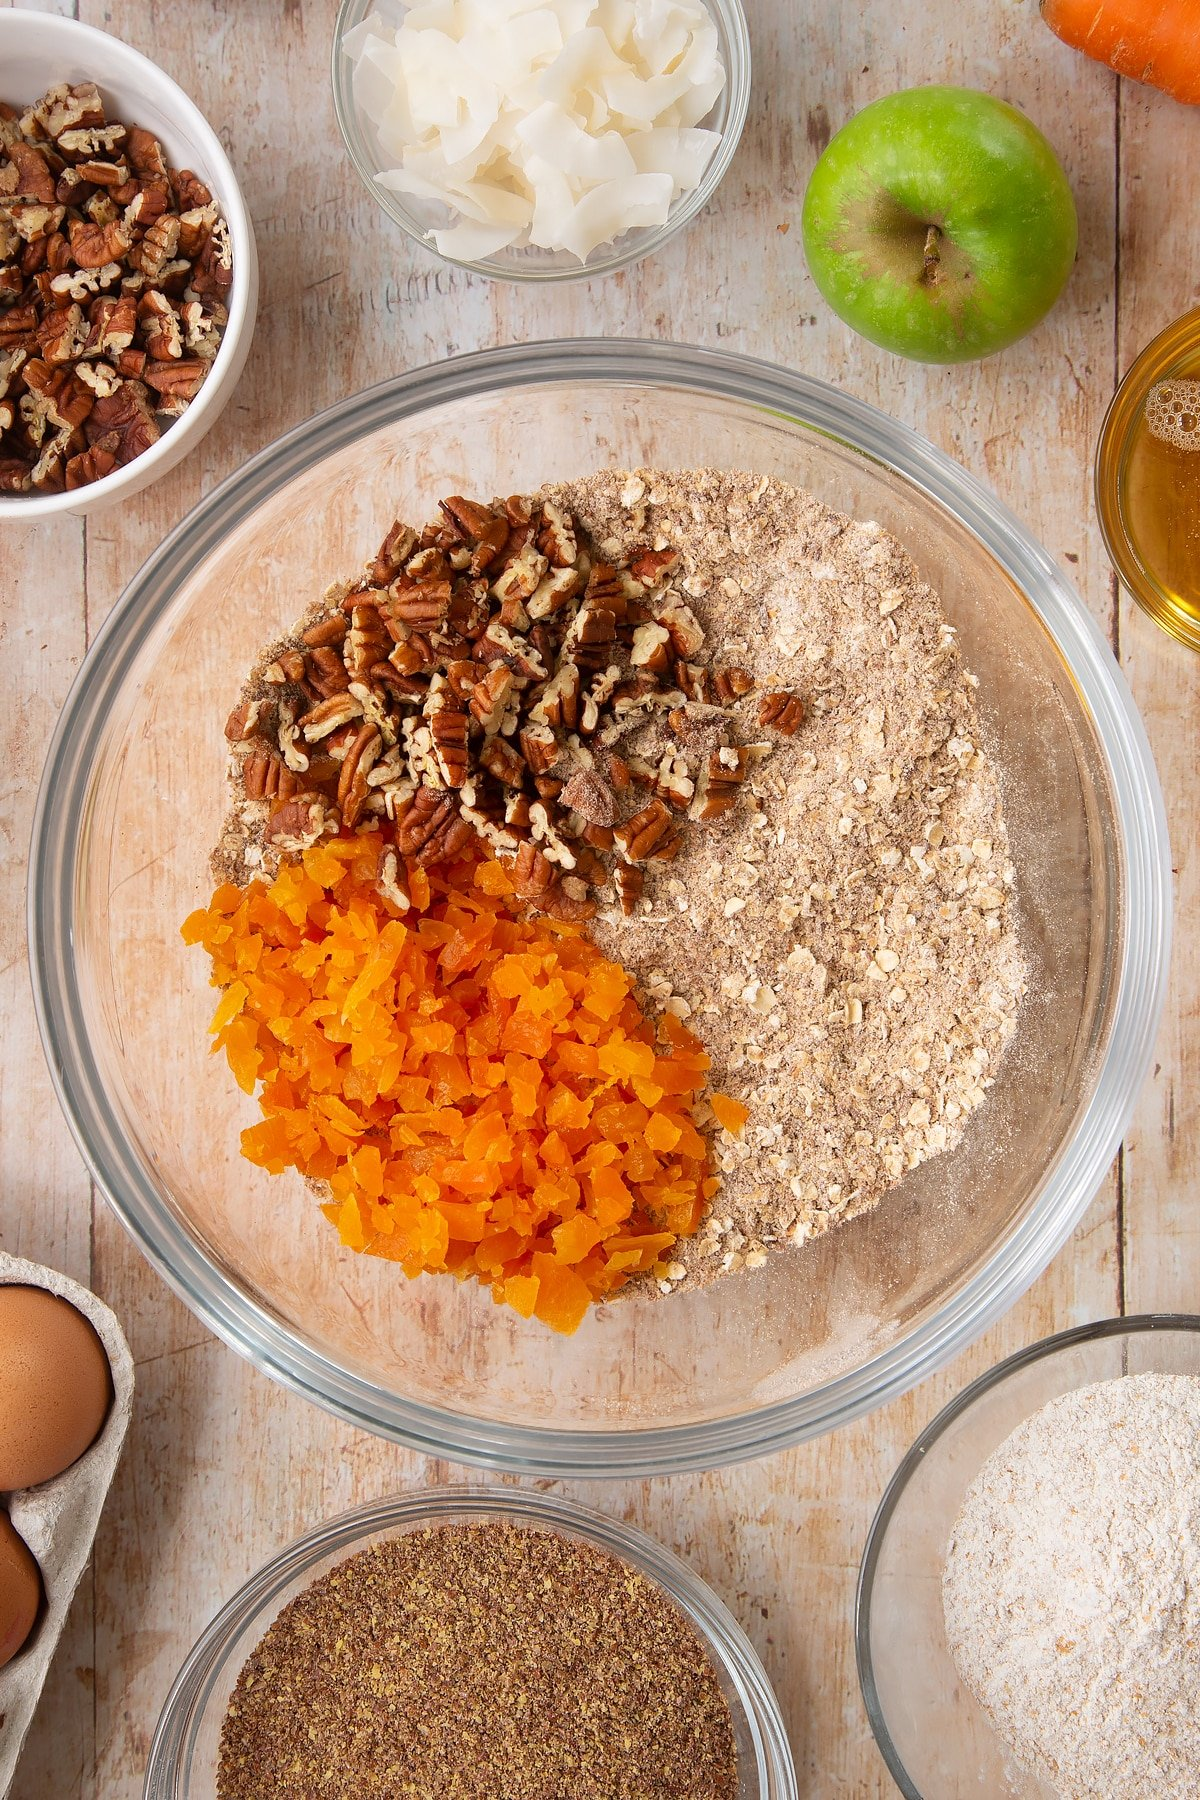 Overhead shot of dry ingredients mix, dried apricots and nuts in a large clear bowl